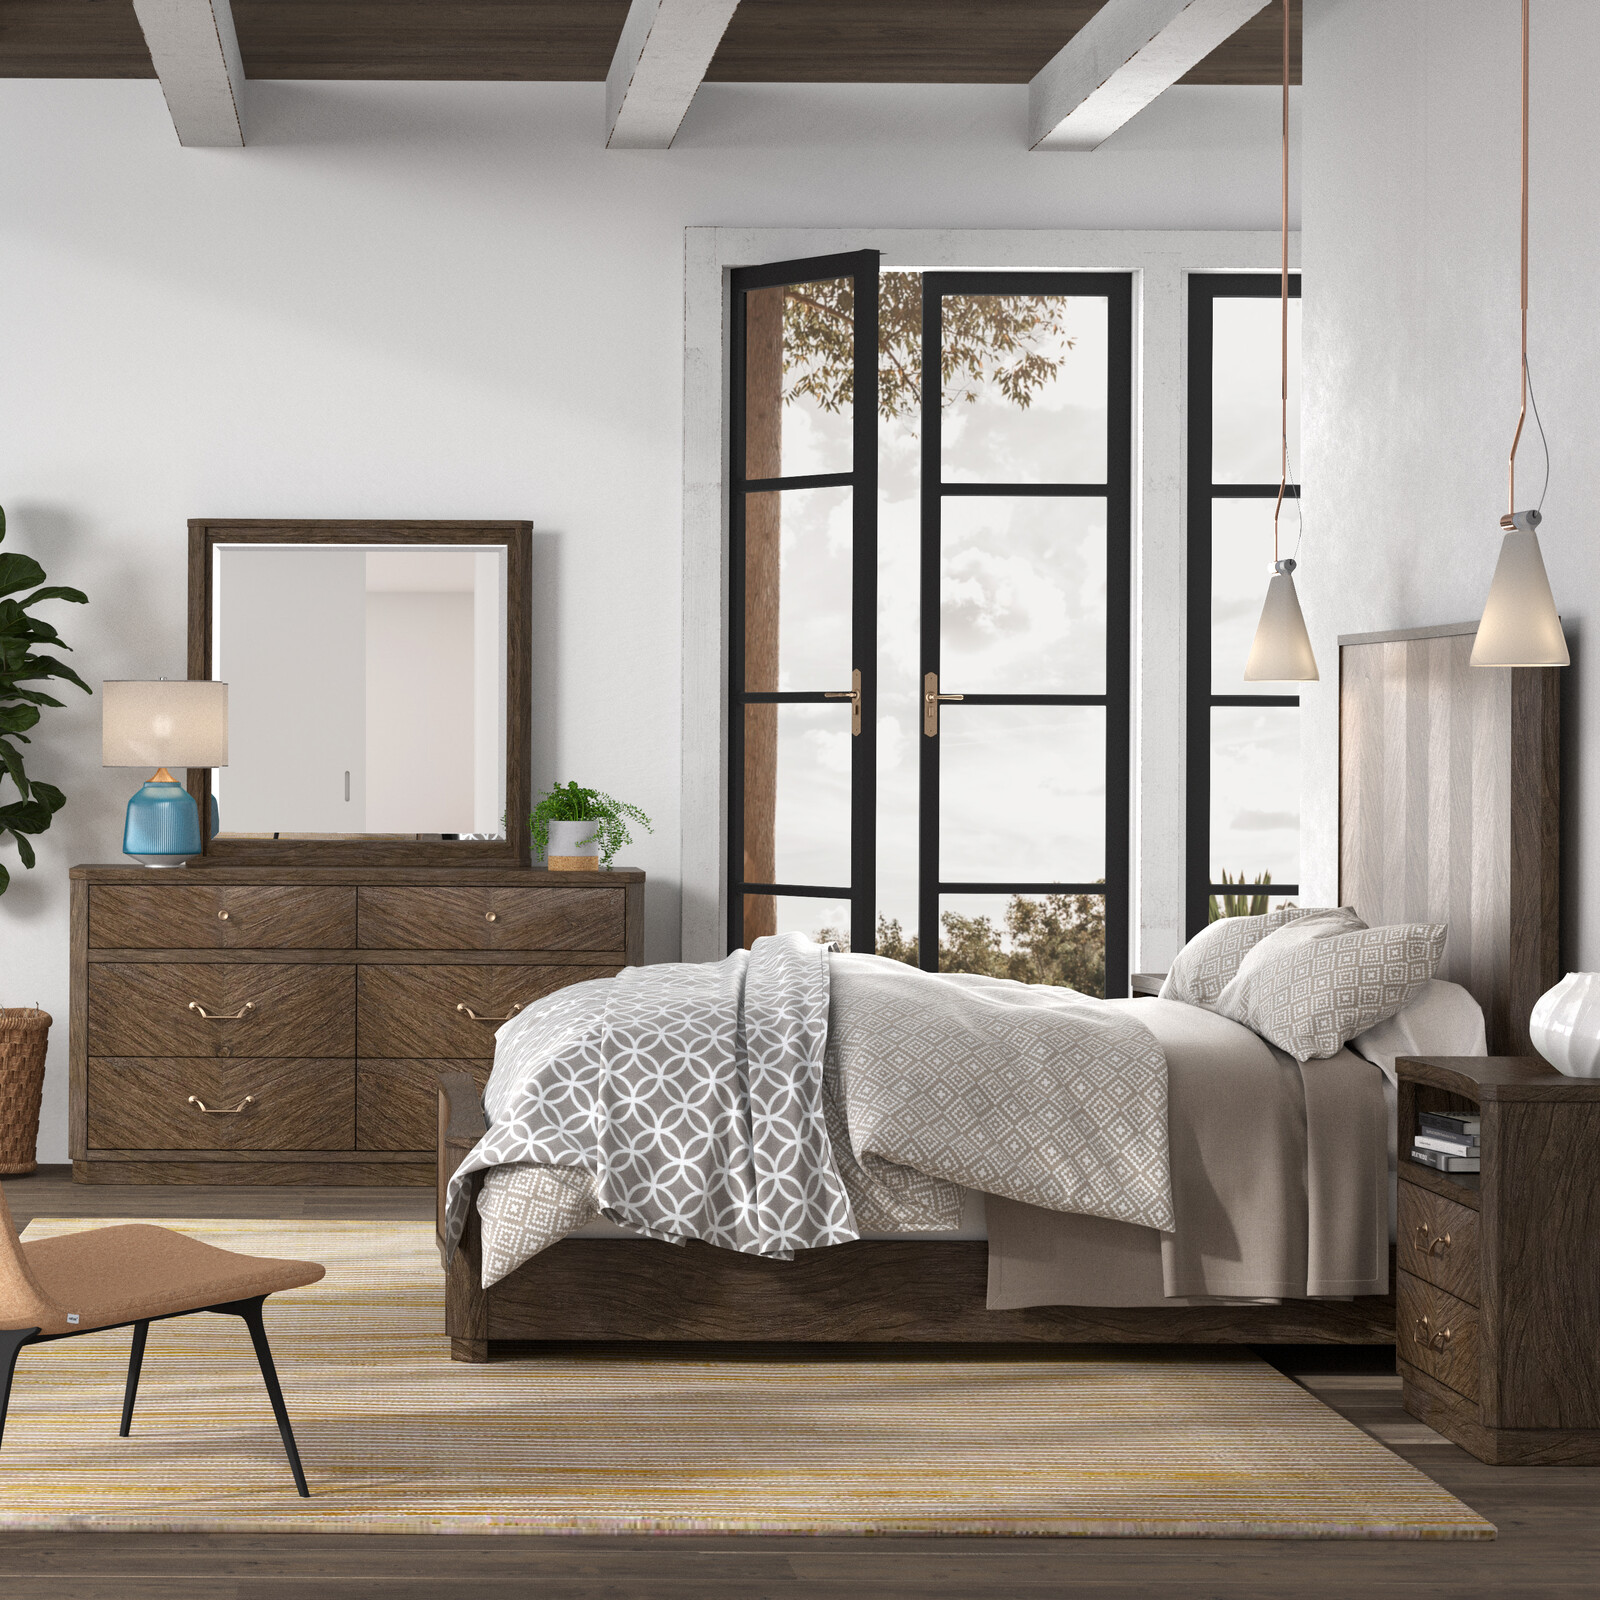 American WoodCrafters Bedroom